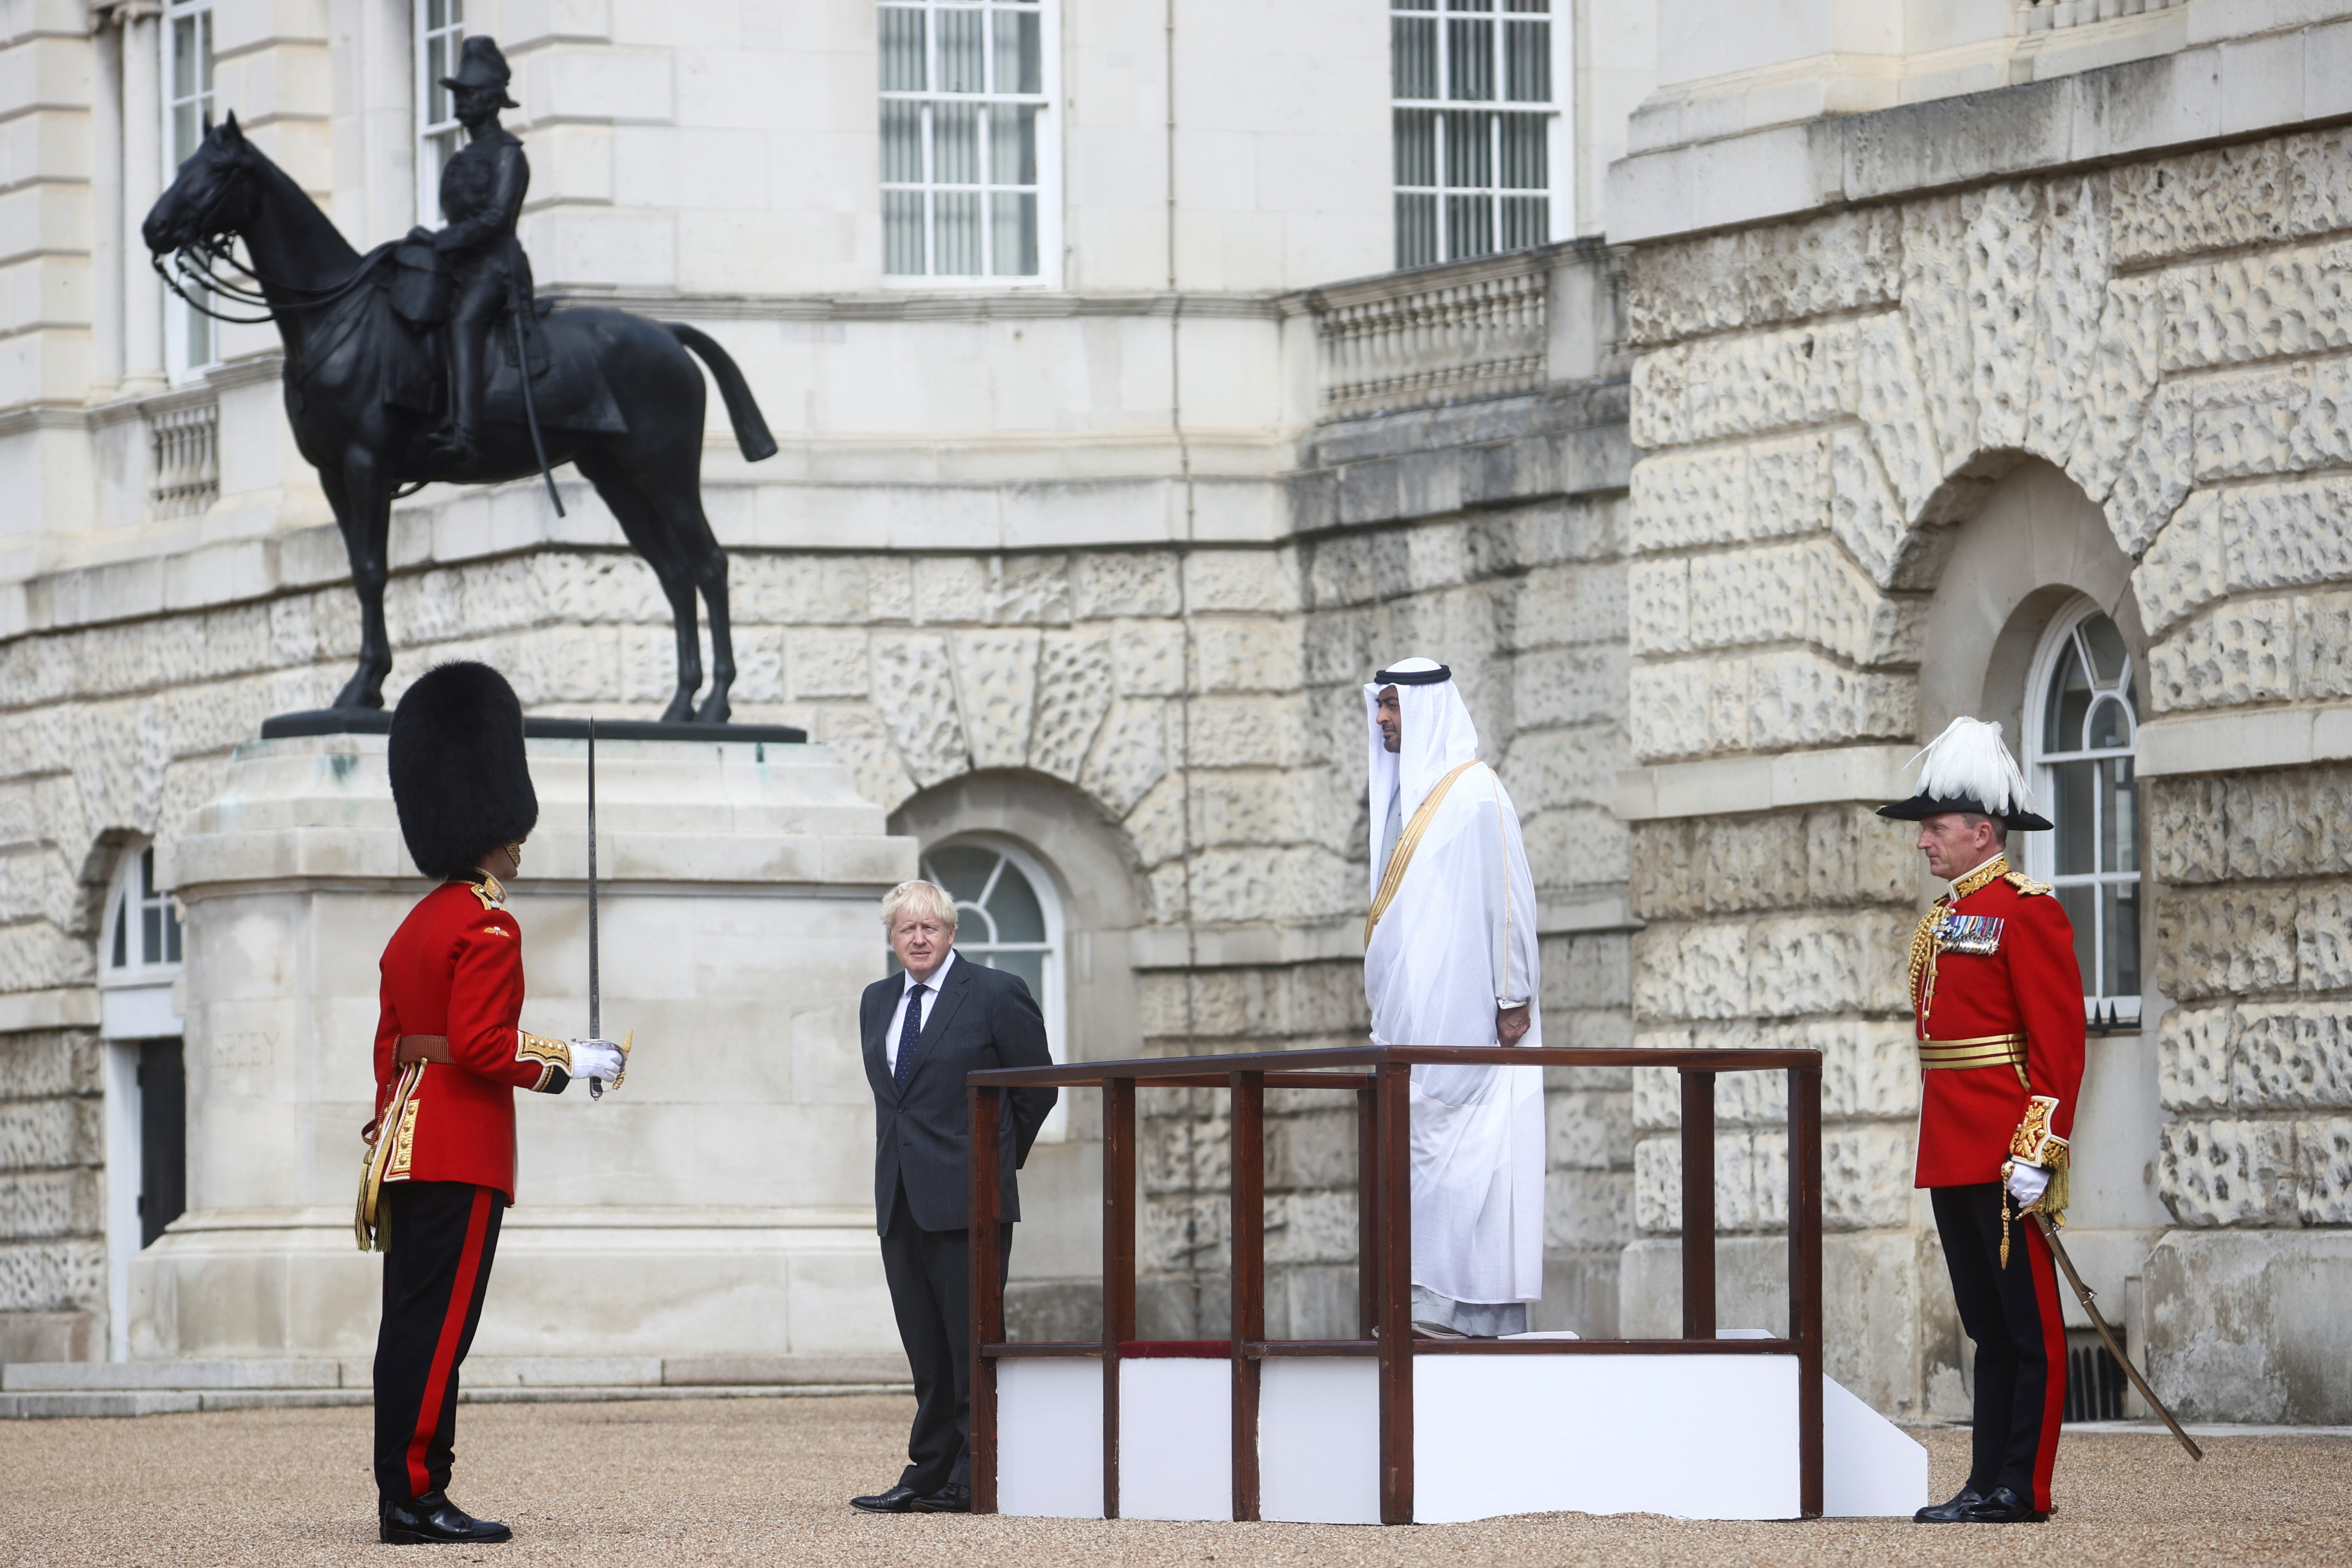 Britain's Prime Minister Boris Johnson and Abu Dhabi's Crown Prince Sheikh Mohammed bin Zayed al-Nahyan inspect the Grenadier Guard in London, Britain, September 16, 2021. REUTERS/Hannah McKay/Pool